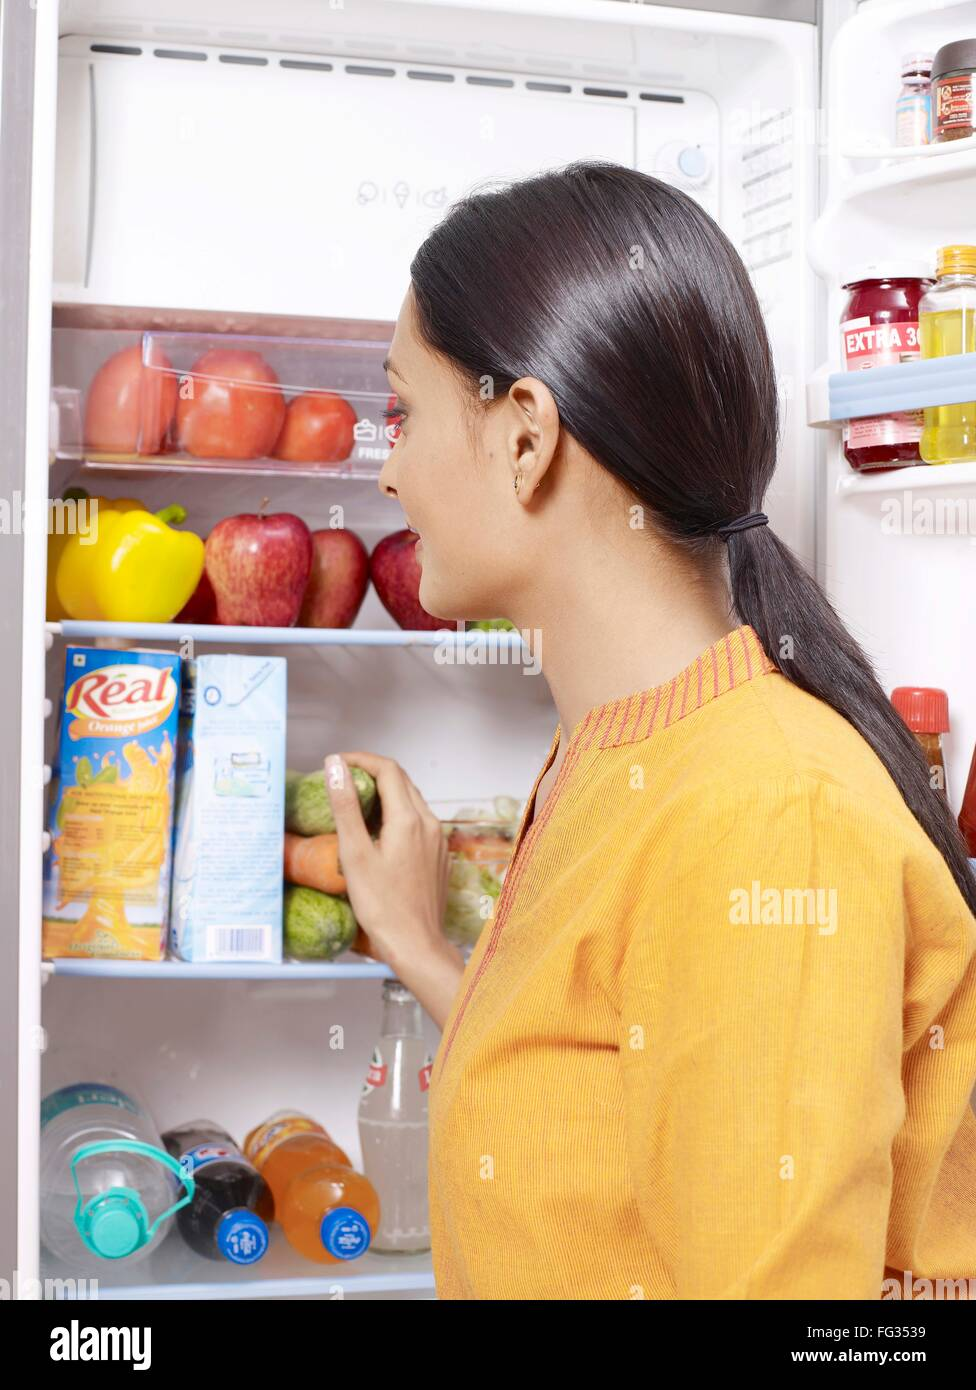 Young lady looking at open refrigerator MR#702U - Stock Image